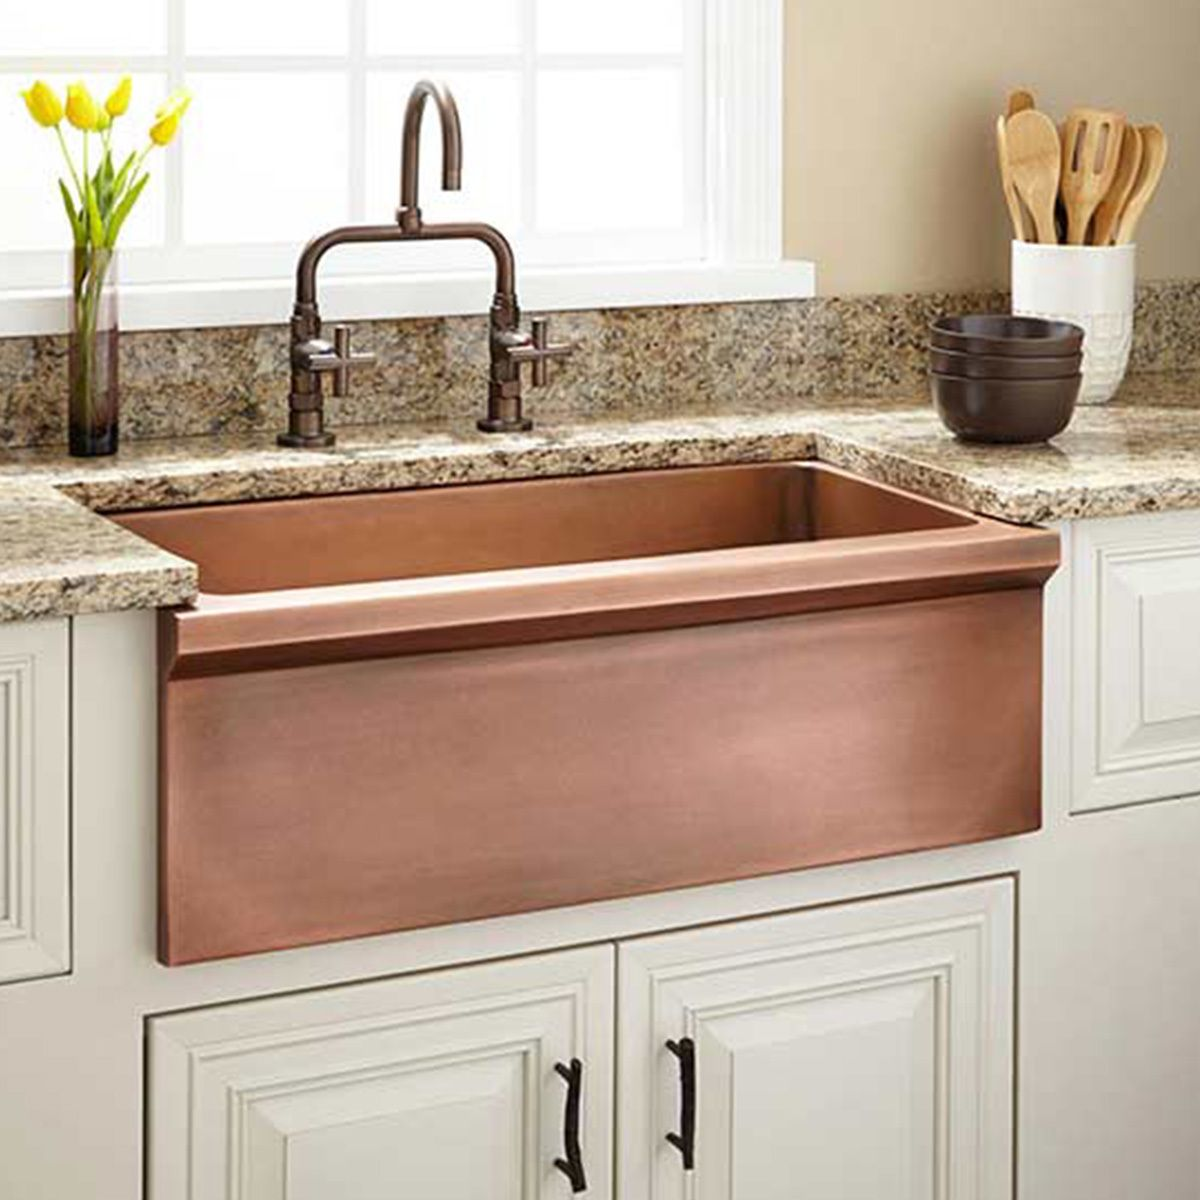 Fall in Love with These Farmhouse Kitchen Sinks! (We Did